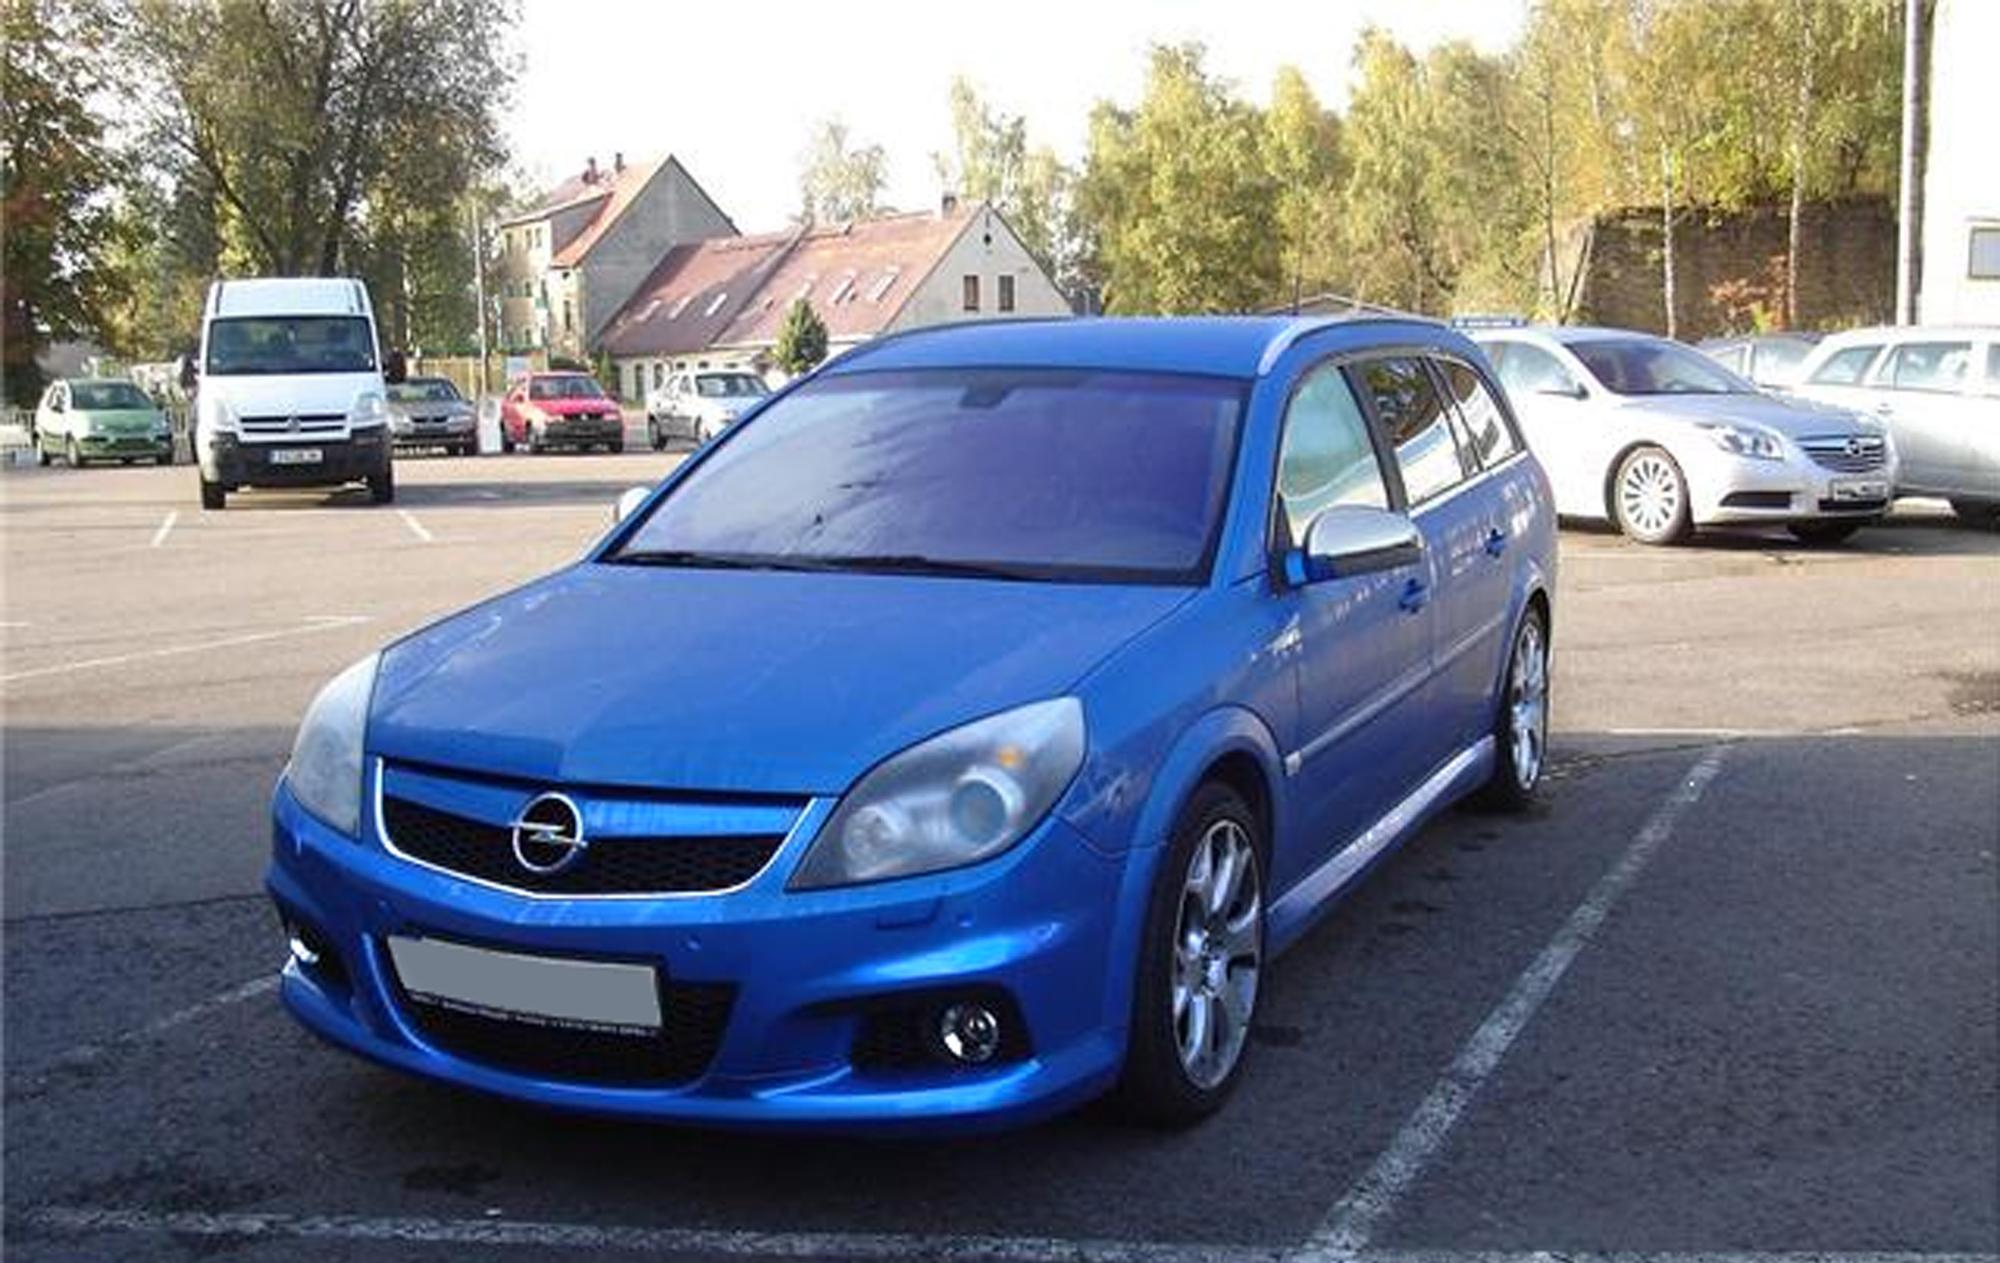 file opel vectra crvn wikimedia commons. Black Bedroom Furniture Sets. Home Design Ideas